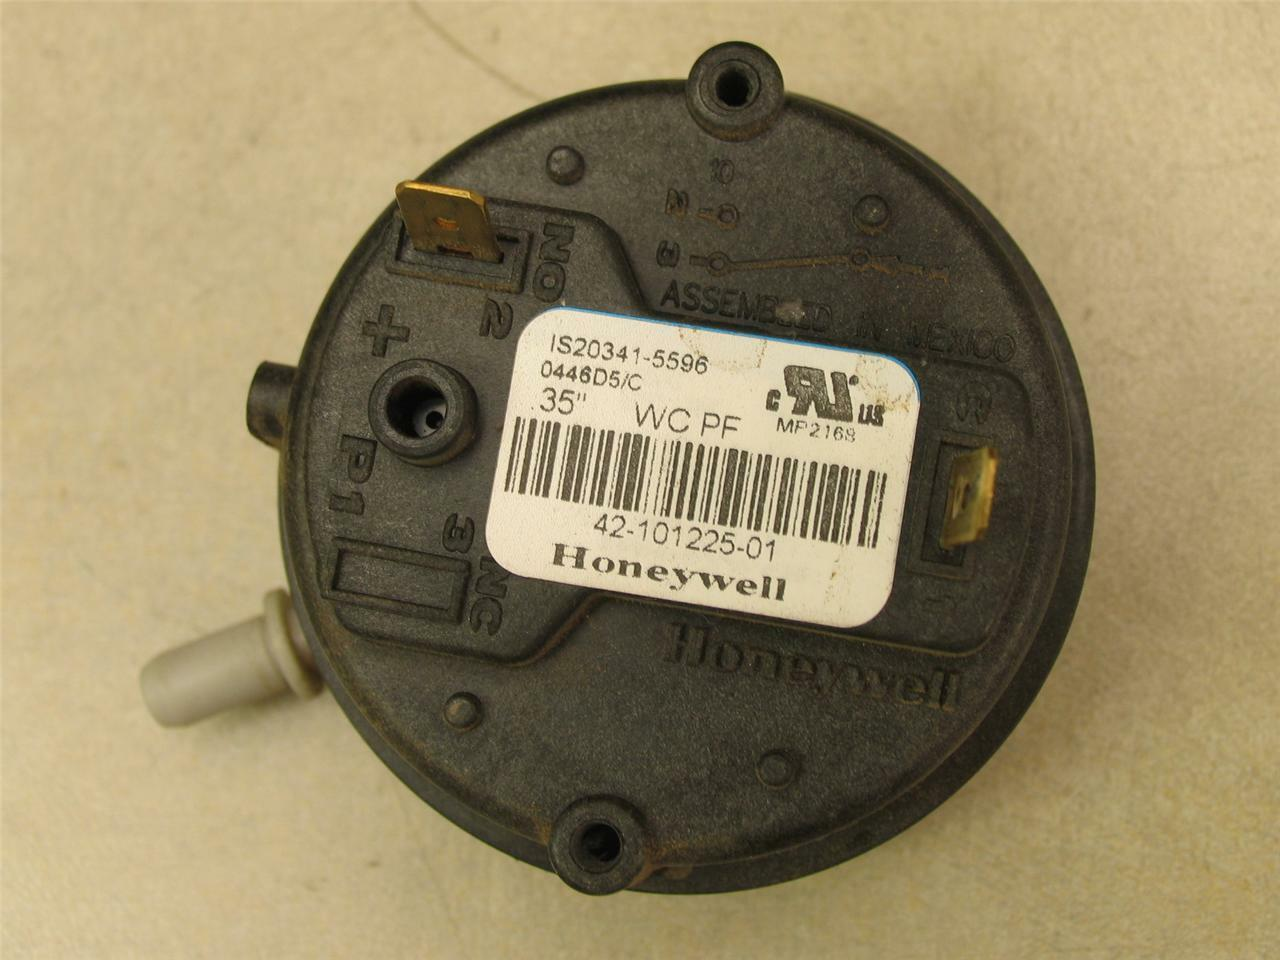 Honeywell 42 101225 01 Air Pressure Switch Is20341 5596 3500 L4064b 1 Of 1free Shipping